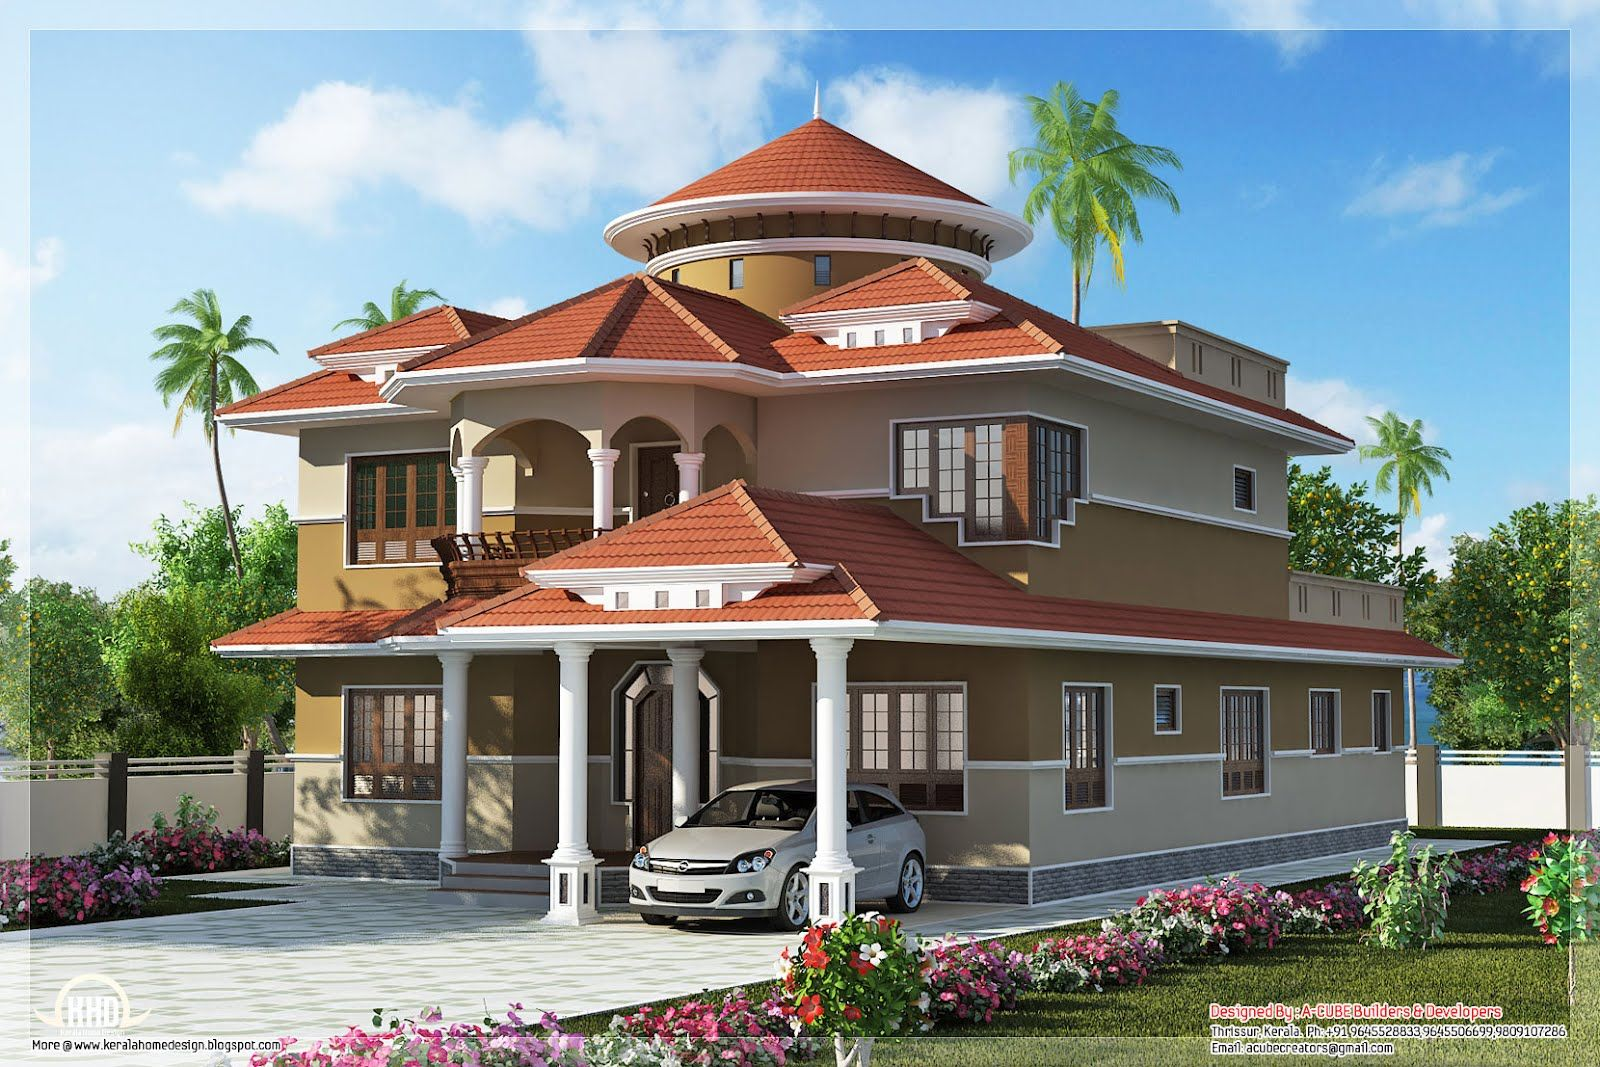 Beautiful Dream Home Design In 2800 Sq Feet In 2020 Modern Bungalow House Design Kerala House Design Bungalow House Design